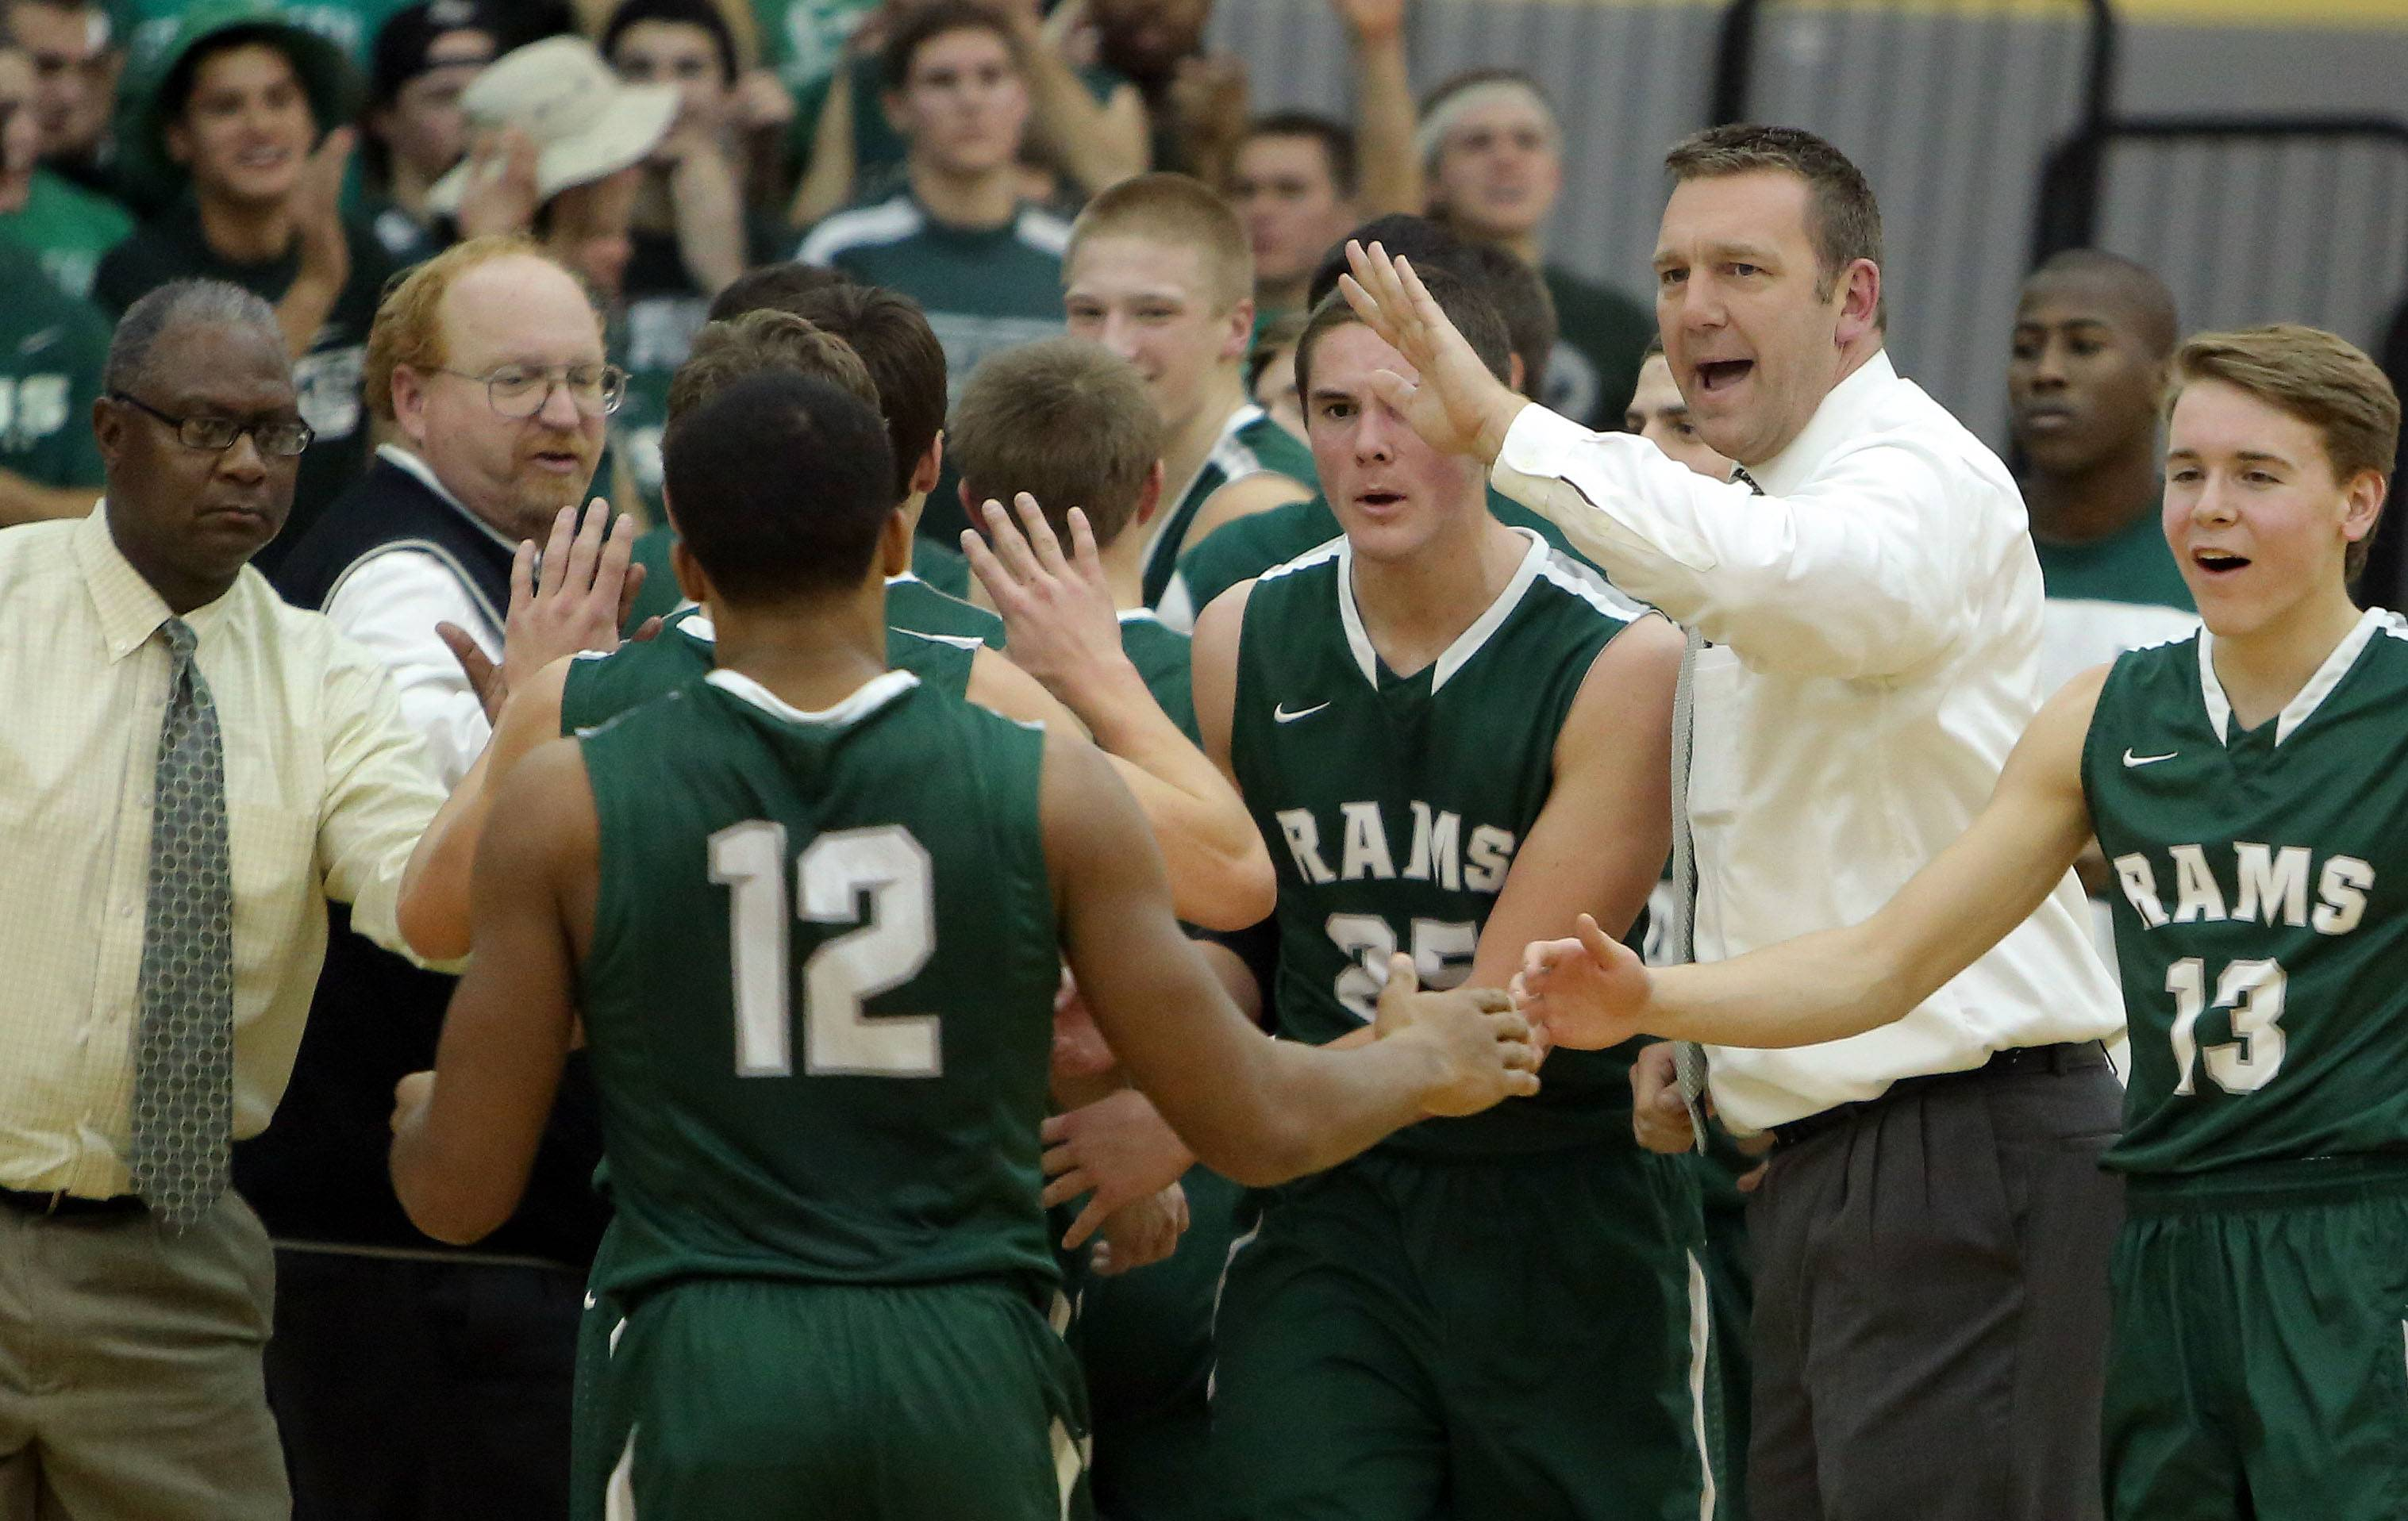 Grayslake Central's Brian Moe, right, encourages his basketball team during a timeout against Grayslake North.